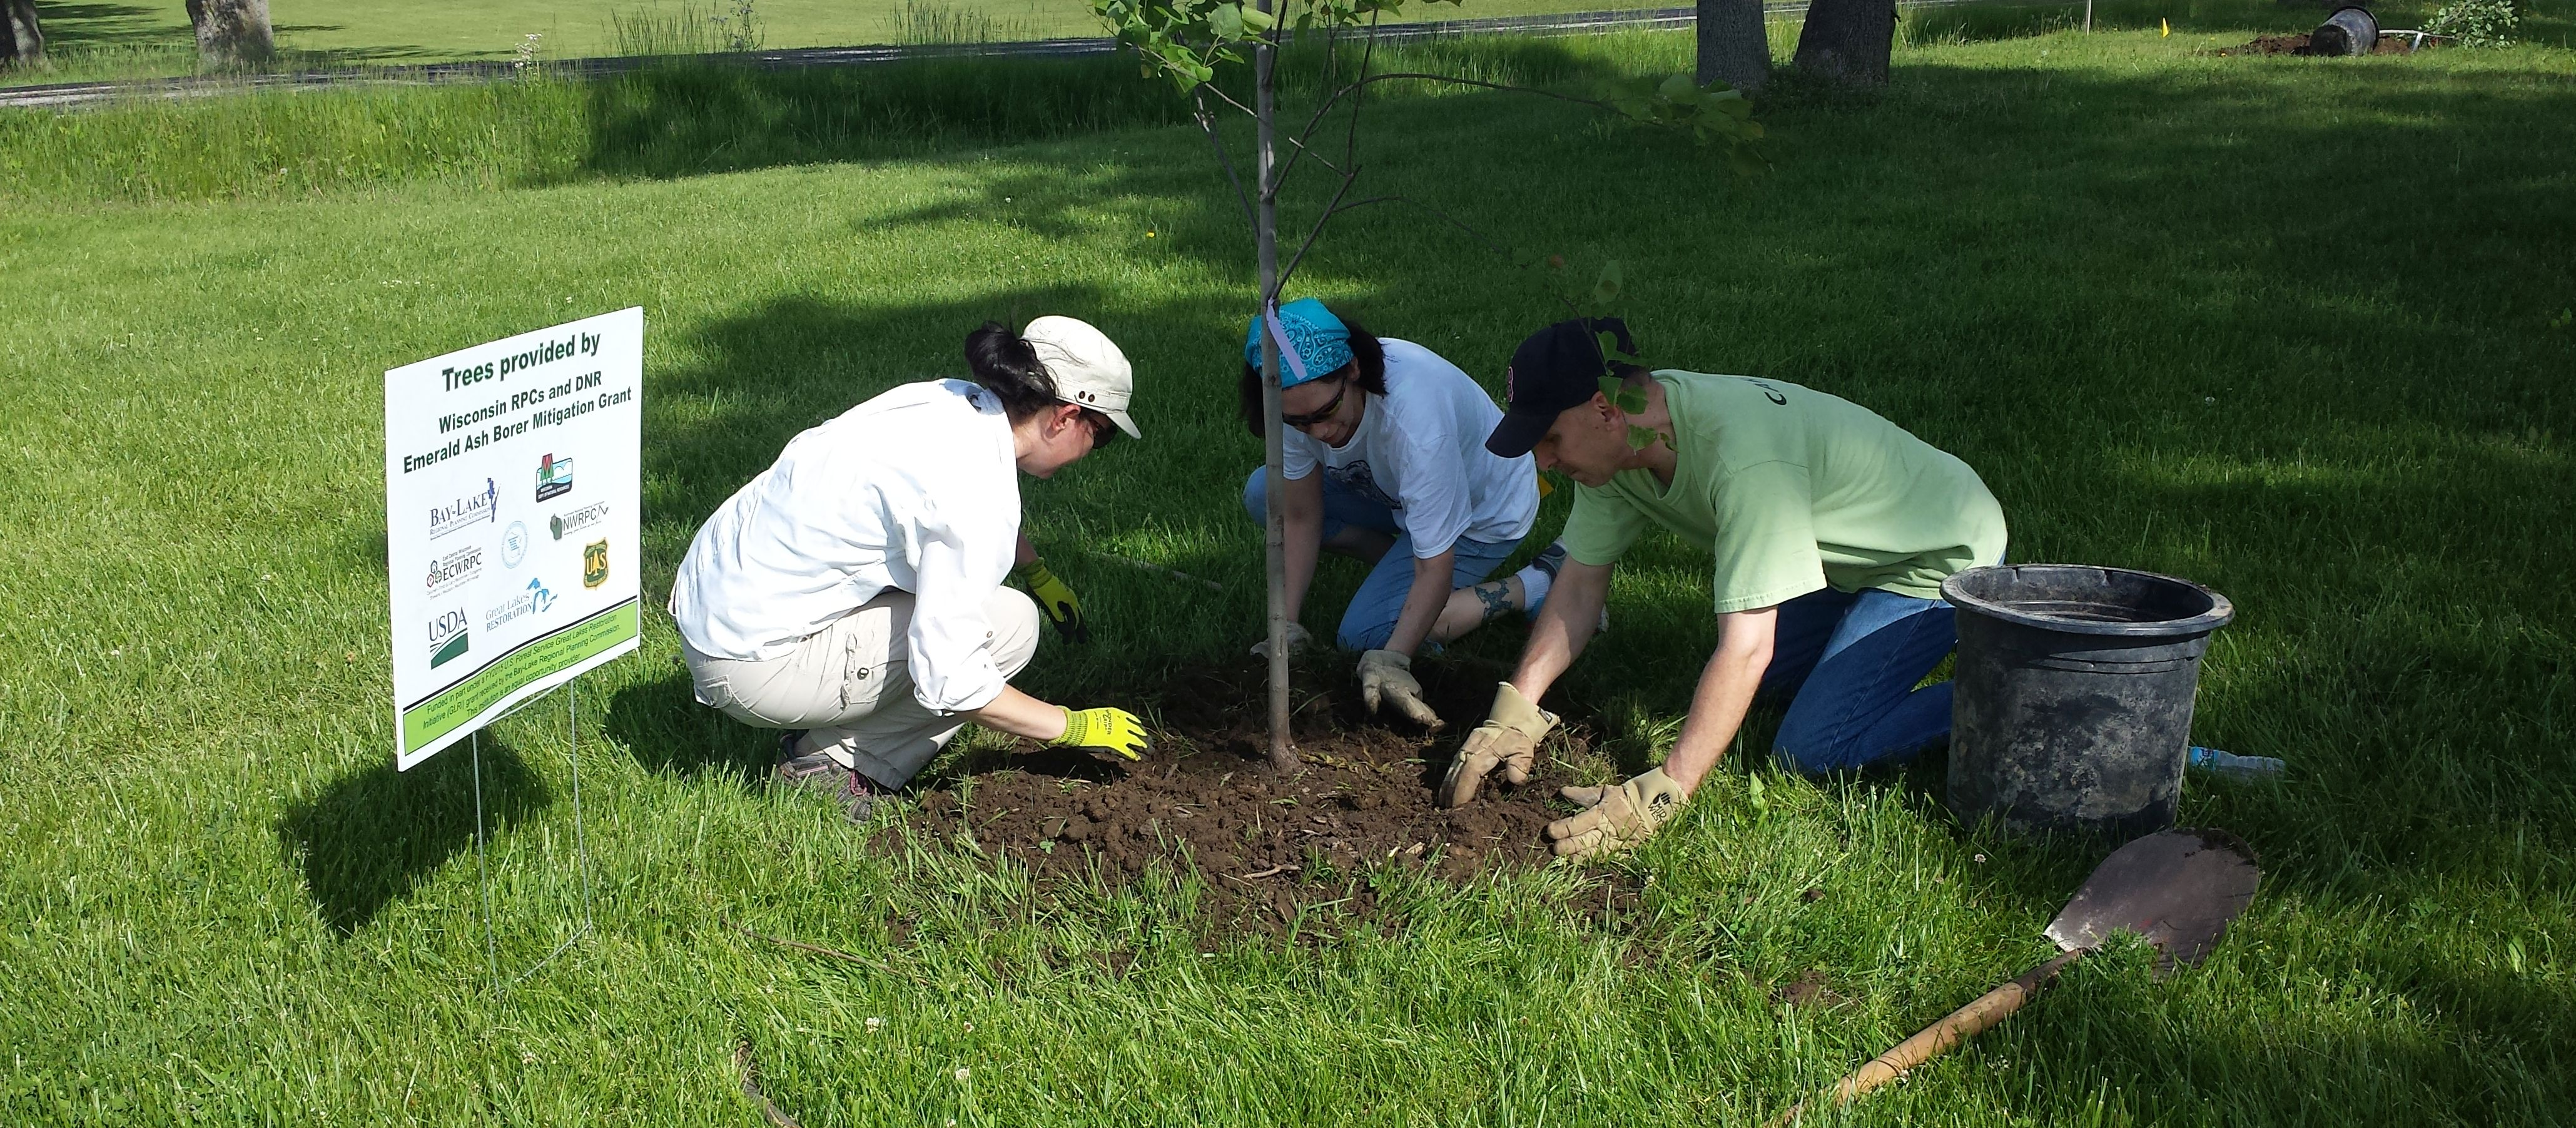 2019 wi rpcs and dnr tree planting grant program bay lake region